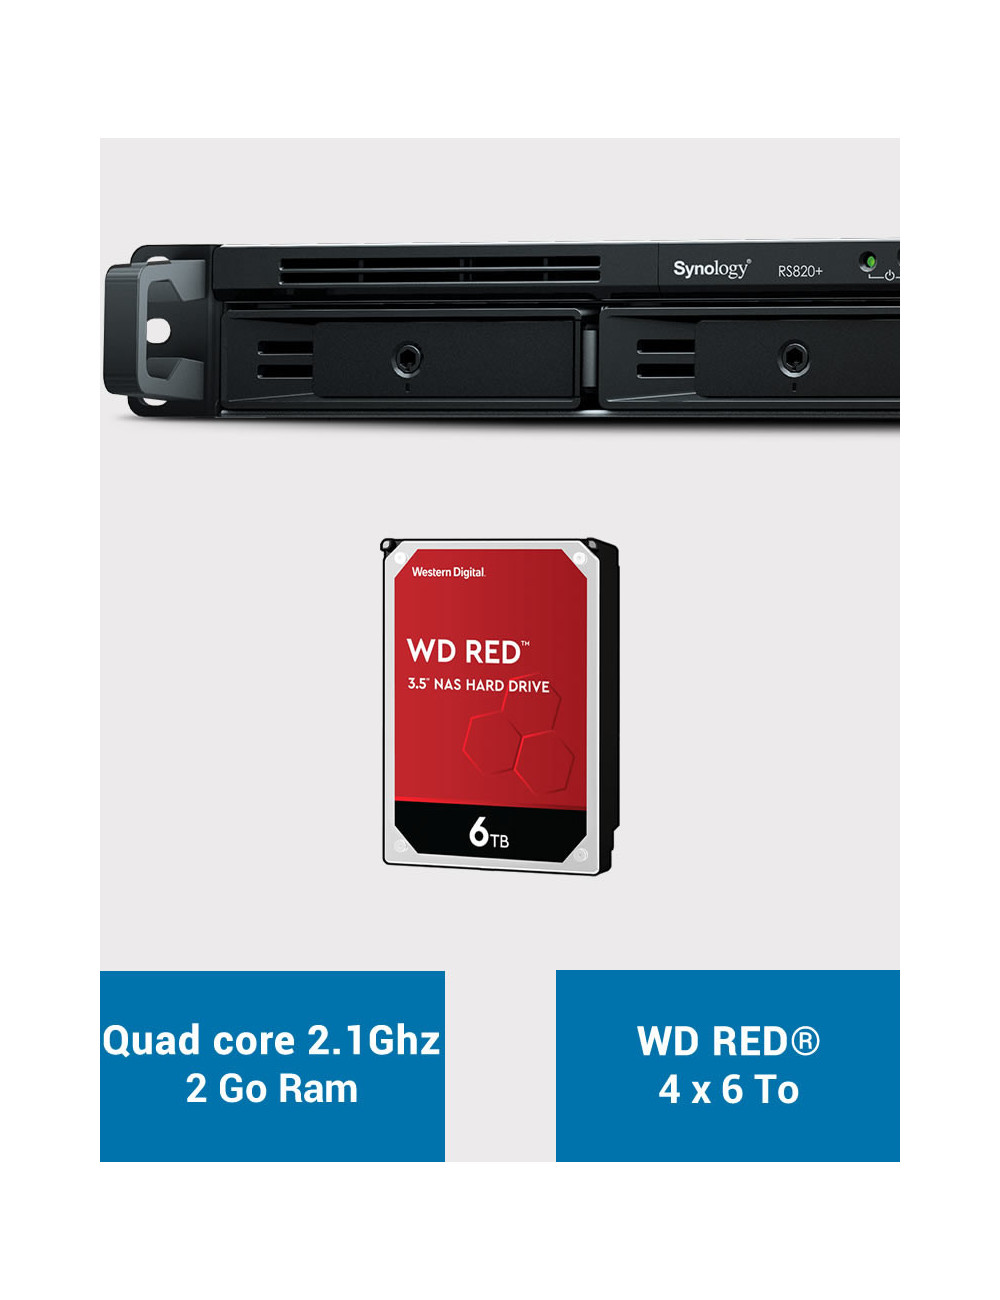 Synology RS820+ Serveur NAS WD RED 24To (4x6To)